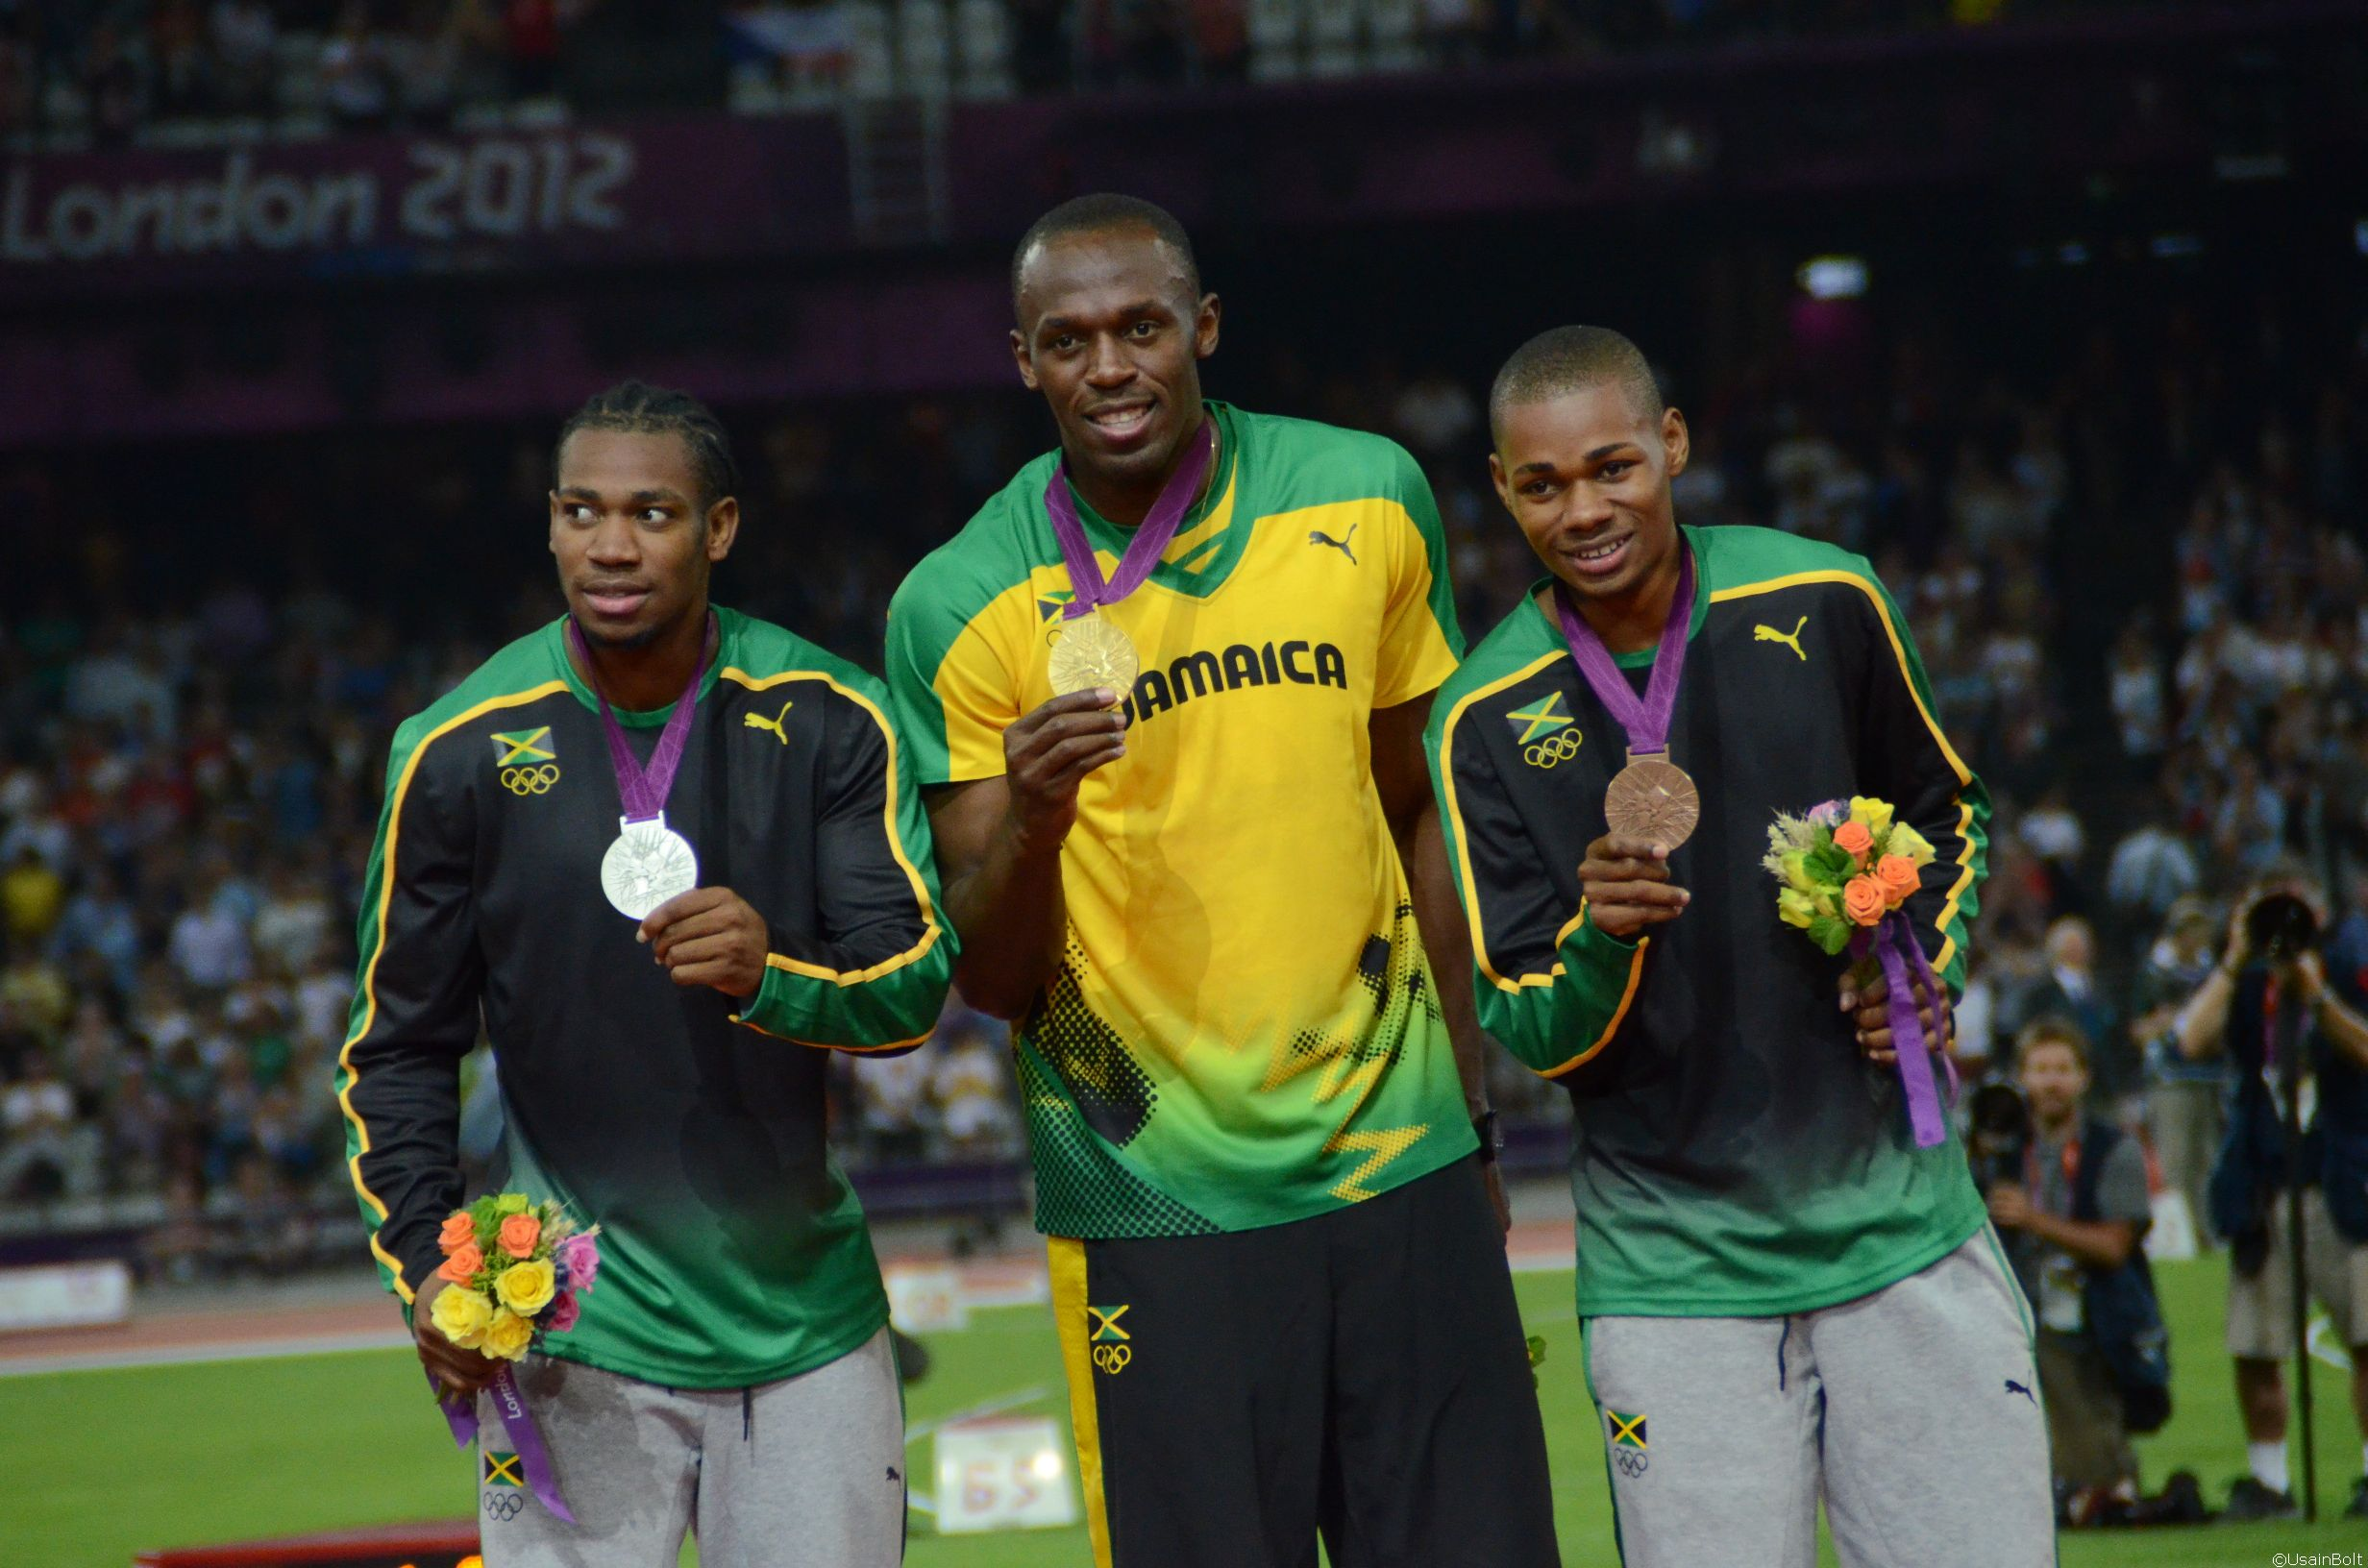 Bolt leads Jamaica's sweep of the Olympic Games 200 metres